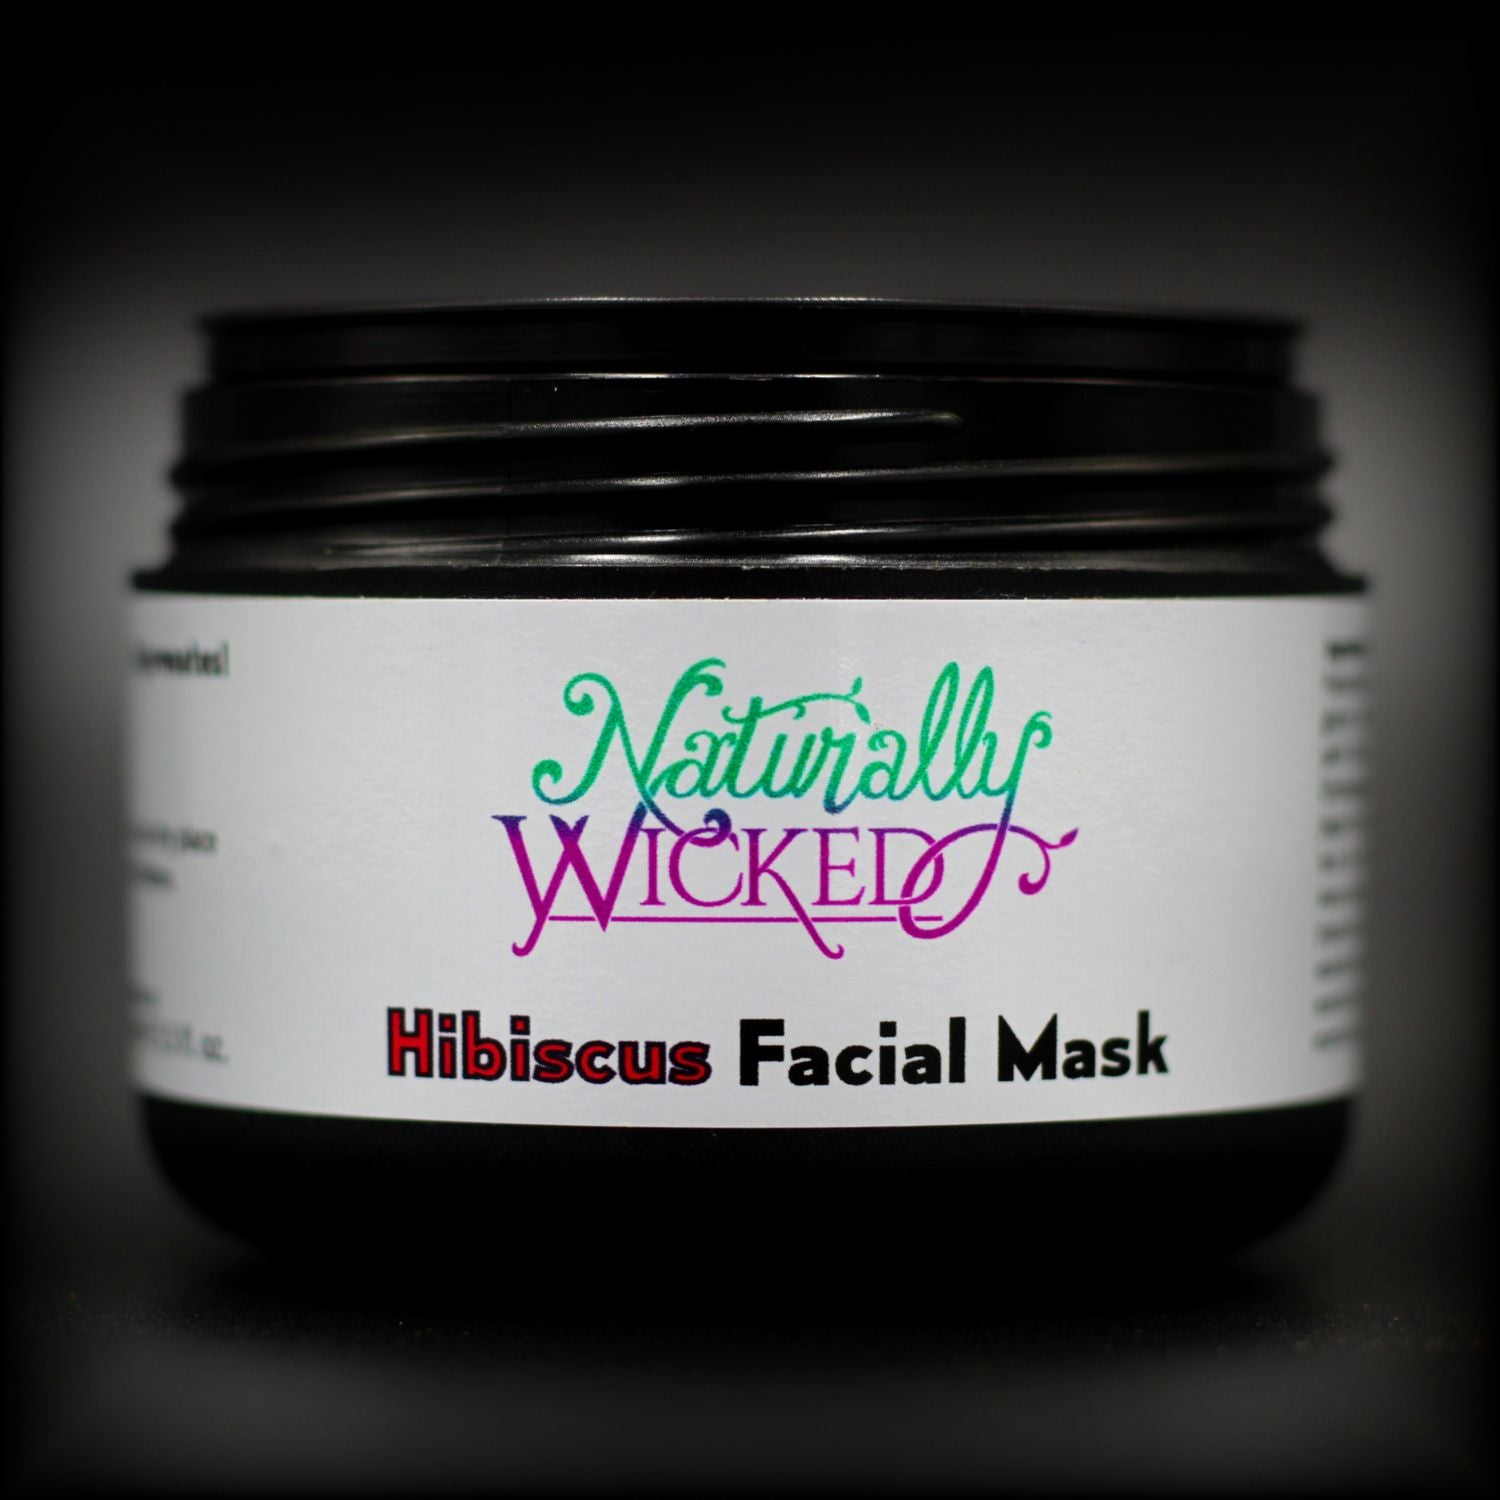 Naturally Wicked Hibiscus Facial Mask Container, Seal & Luxury Screw Connection With Lid Off